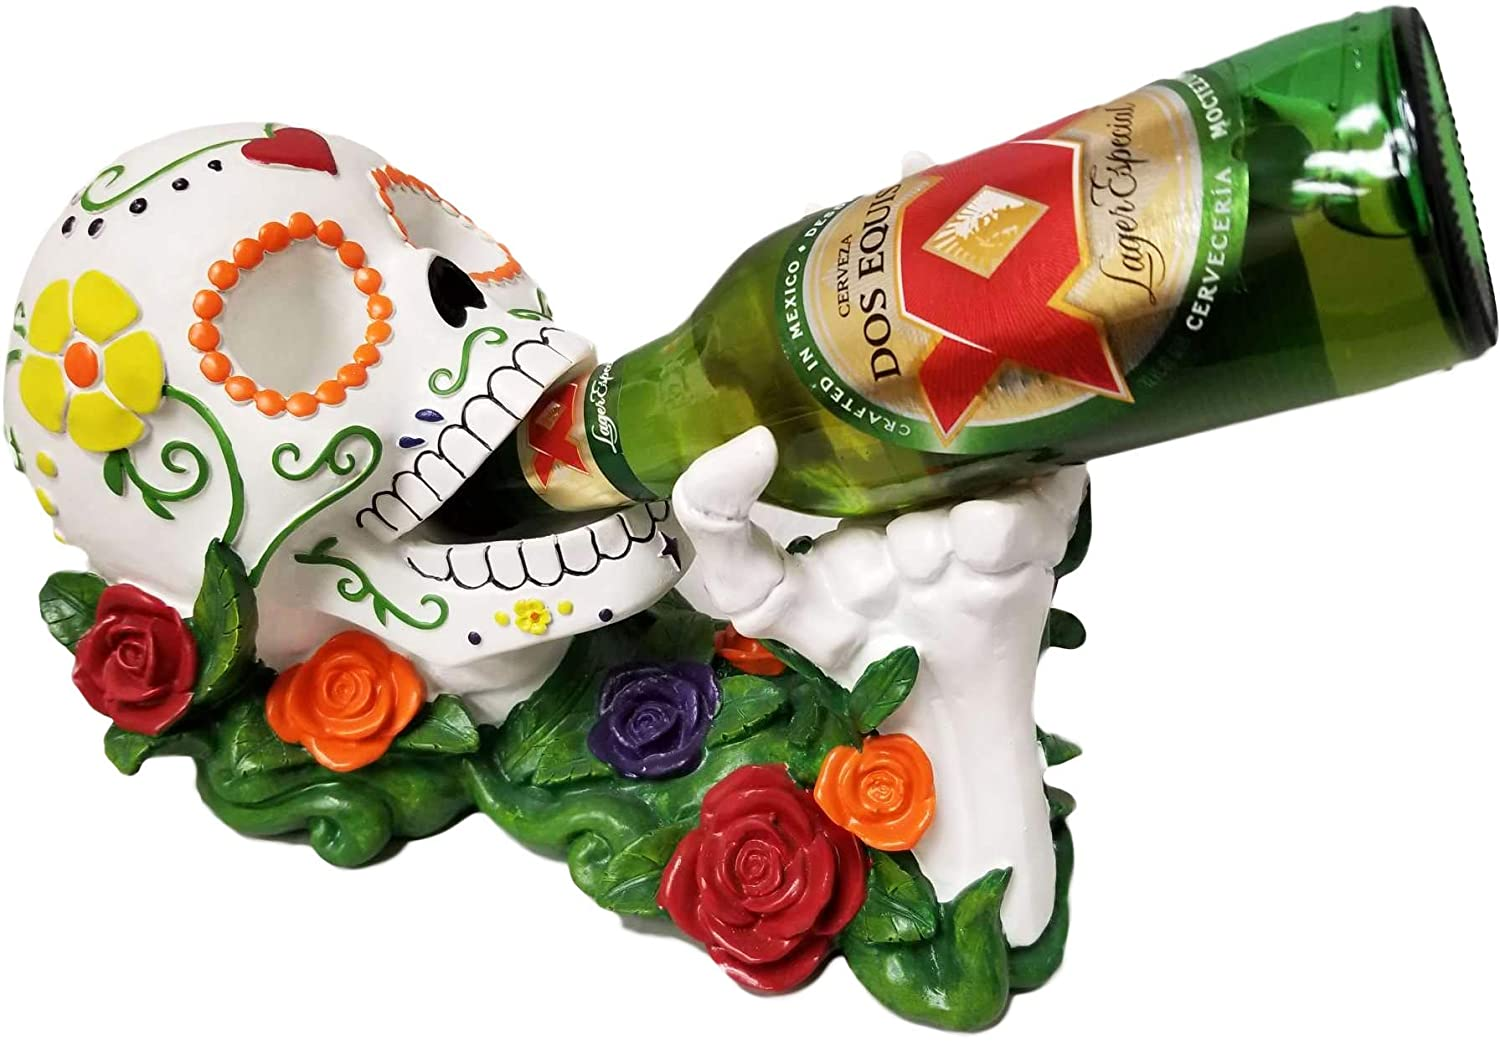 World of Wonders - Vin Los Muertos - Day of The Dead Sugar Skull Tabletop Wine Display Rack Beverage Holder Bottle Caddy Dia de Los Muertos Statue Home Décor Dining Accent, 11-inch